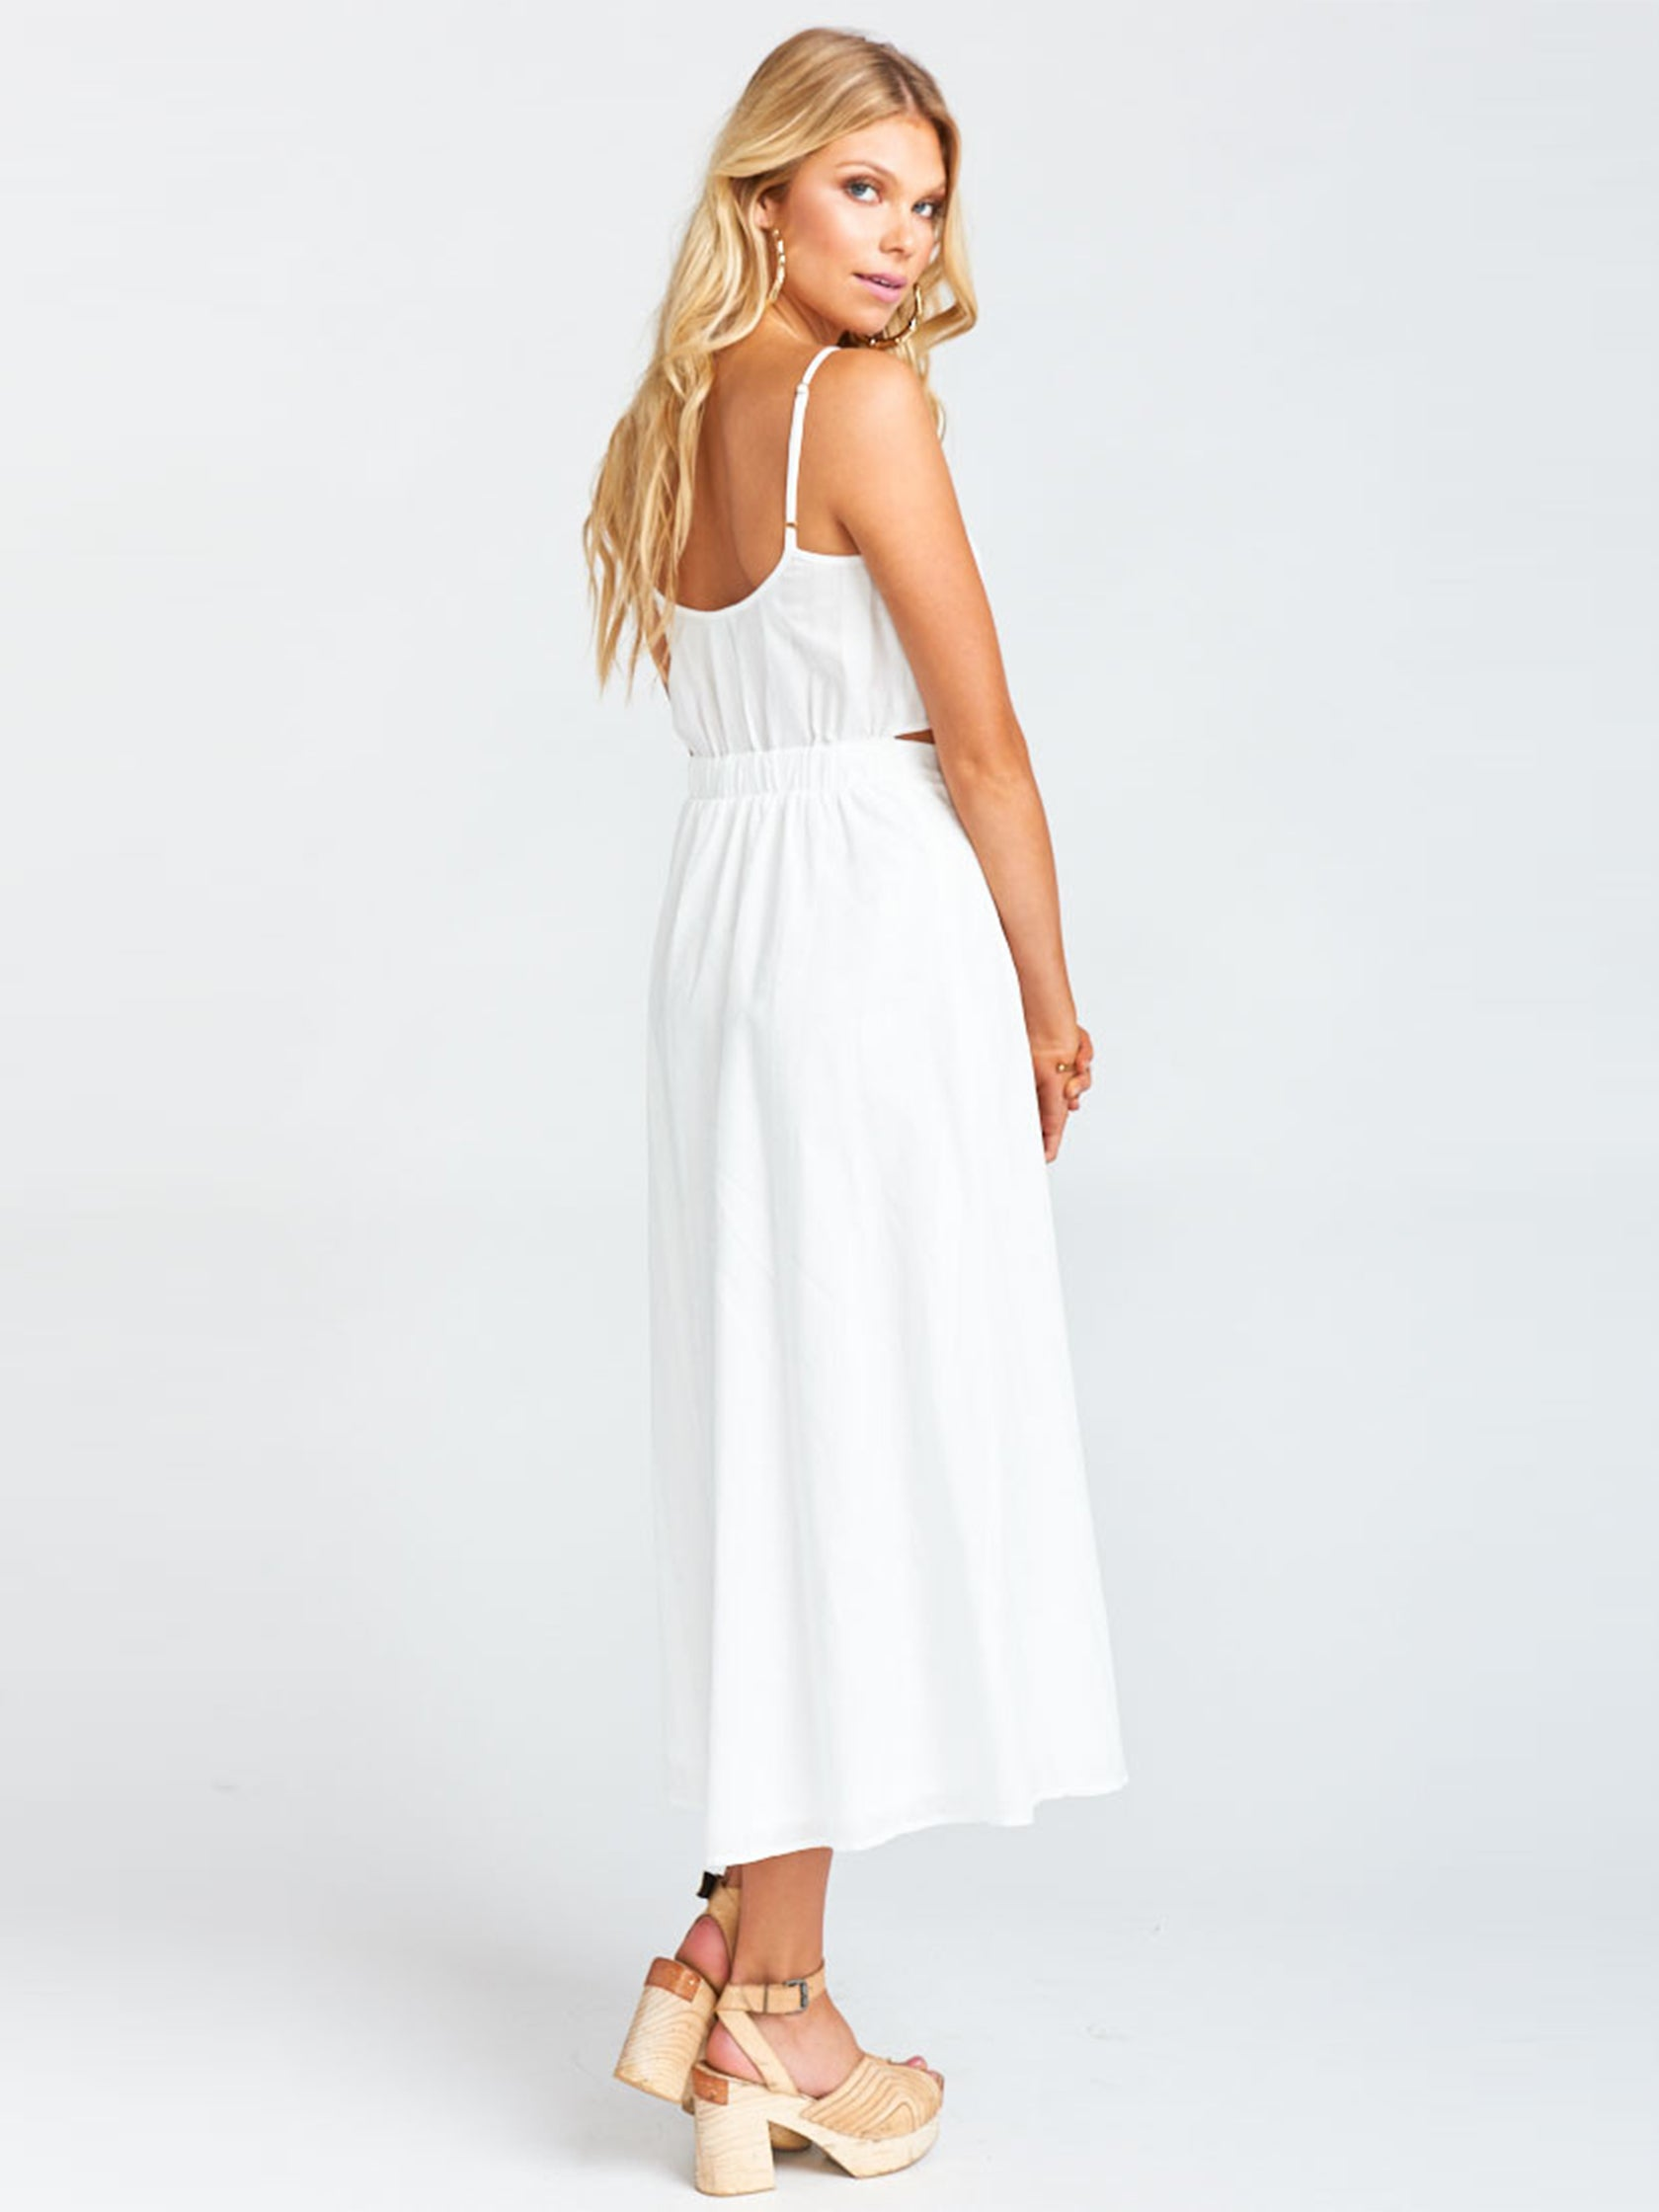 Women outfit in a dress rental from Show Me Your Mumu called Moby Tie Maxi - White Tulip